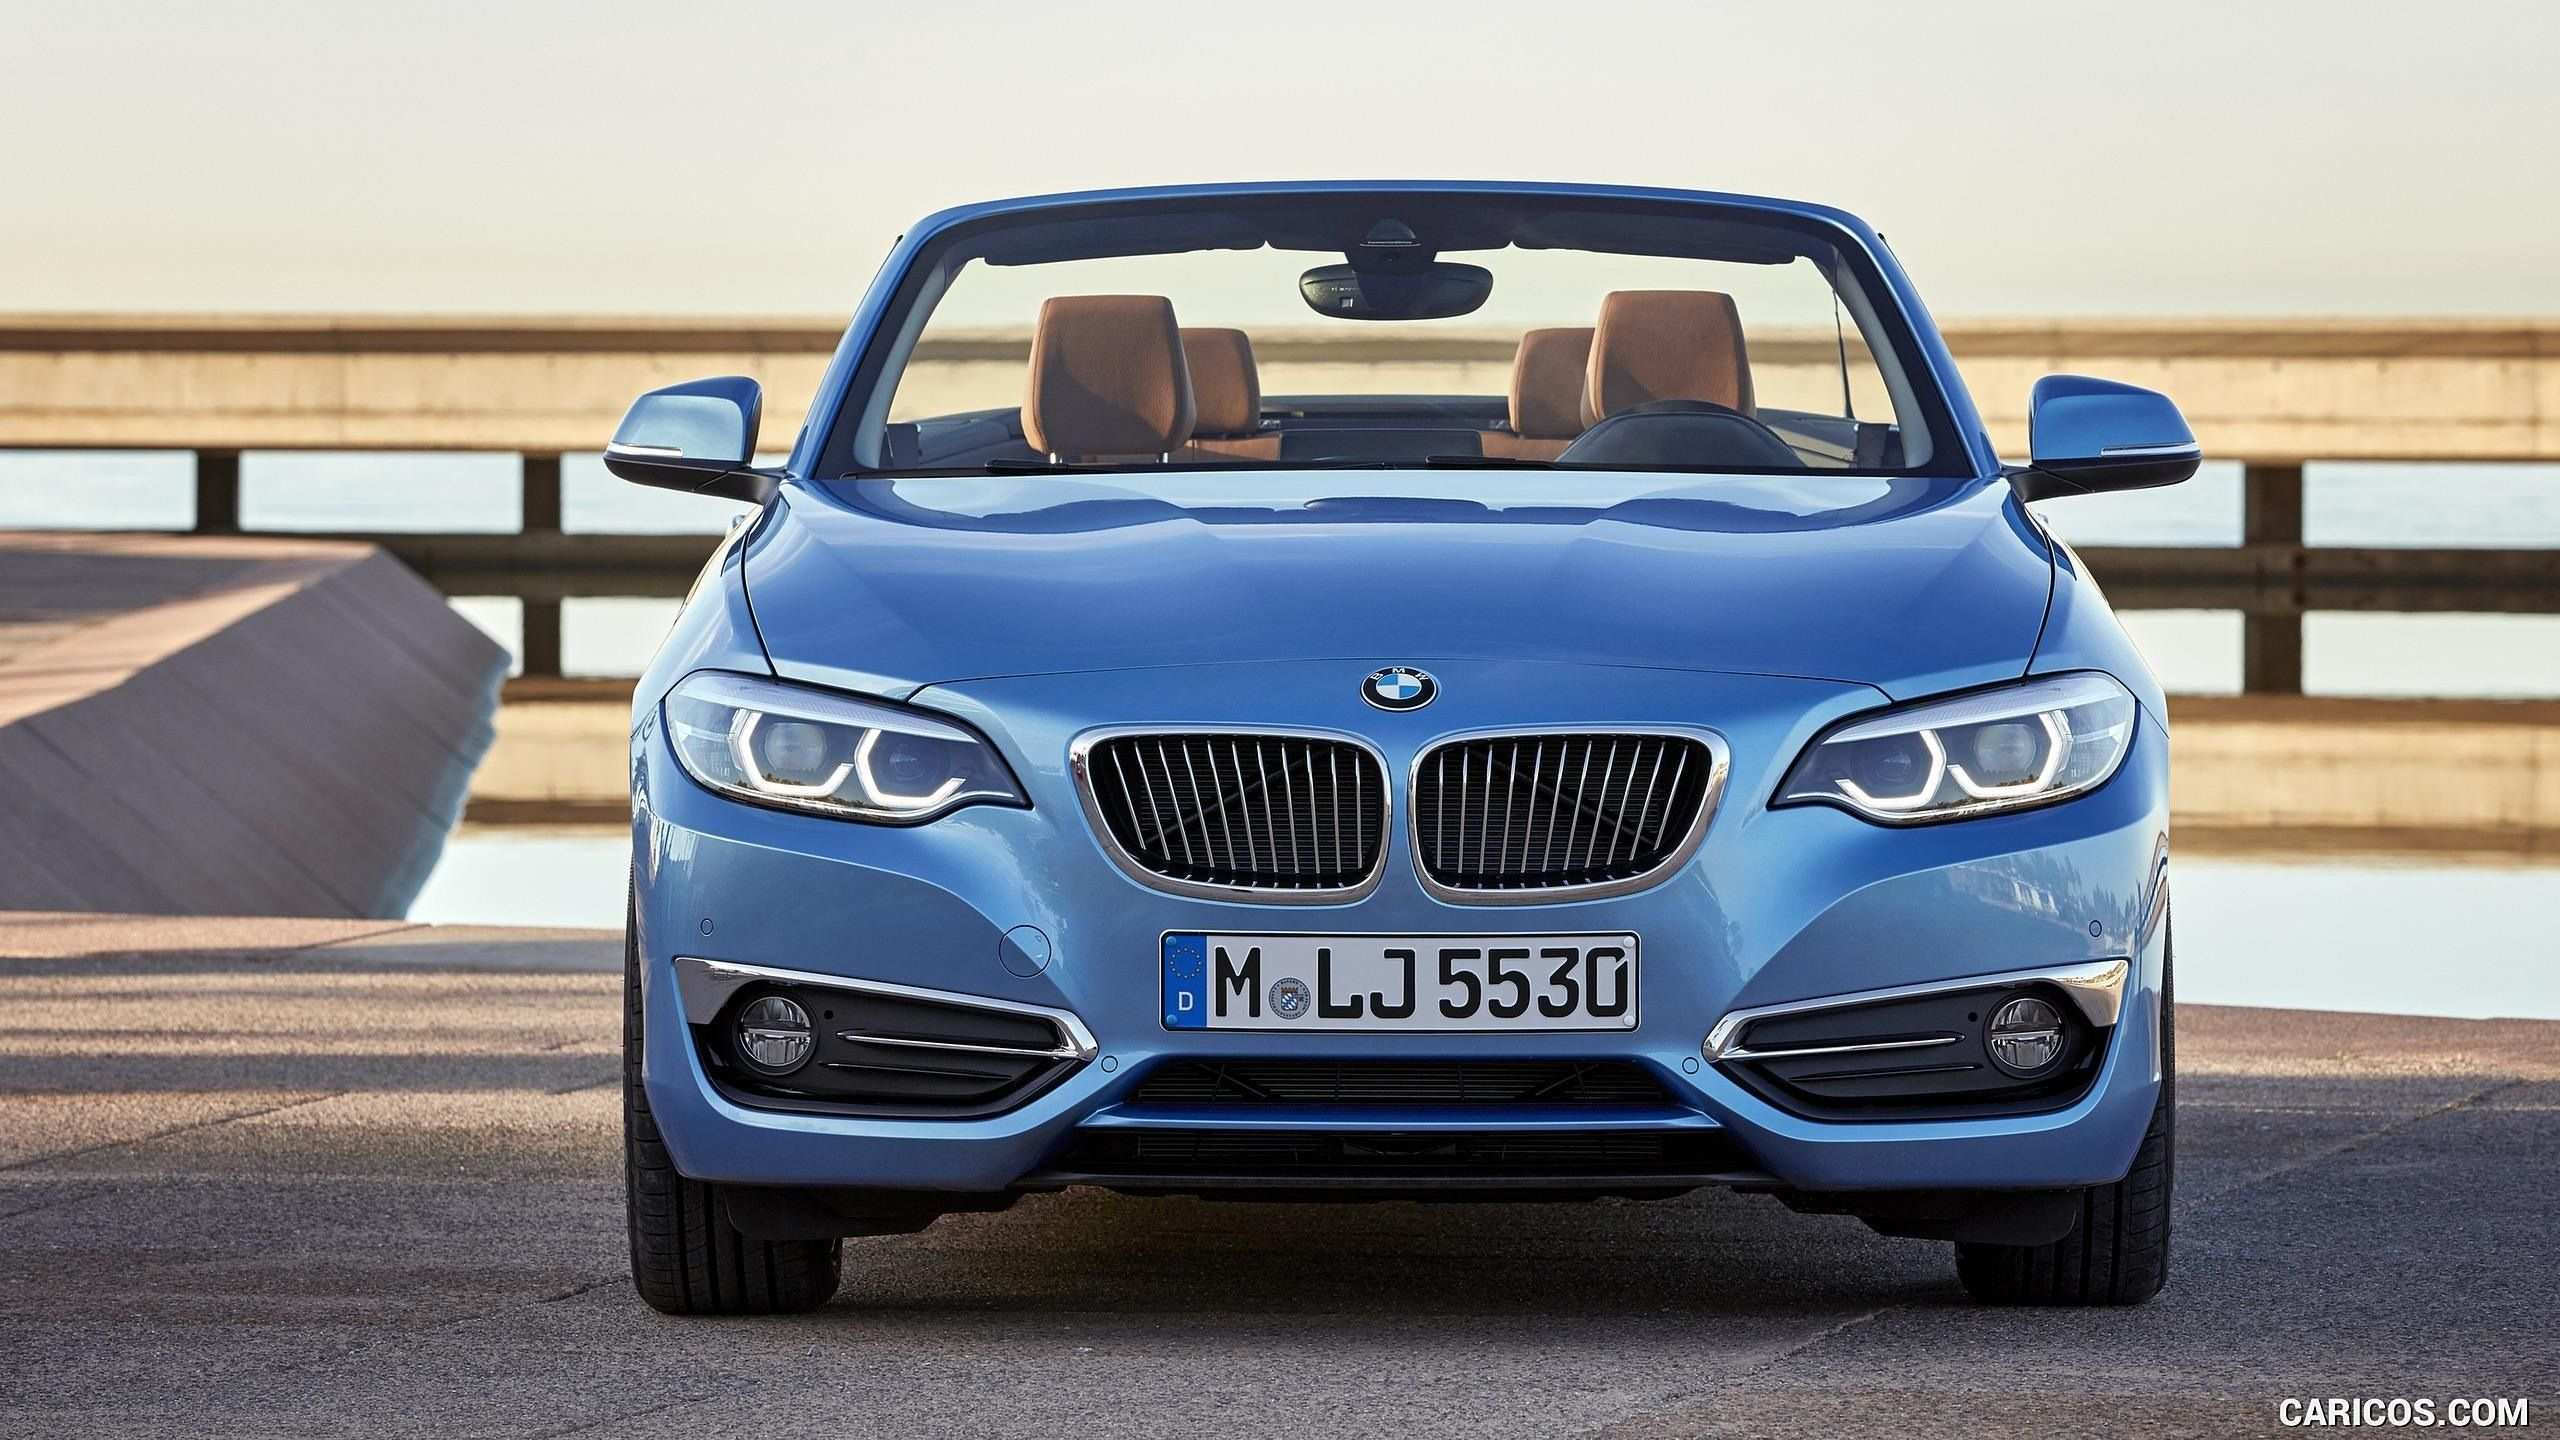 57 Best Review 2020 BMW 220D Xdrive Interior by 2020 BMW 220D Xdrive